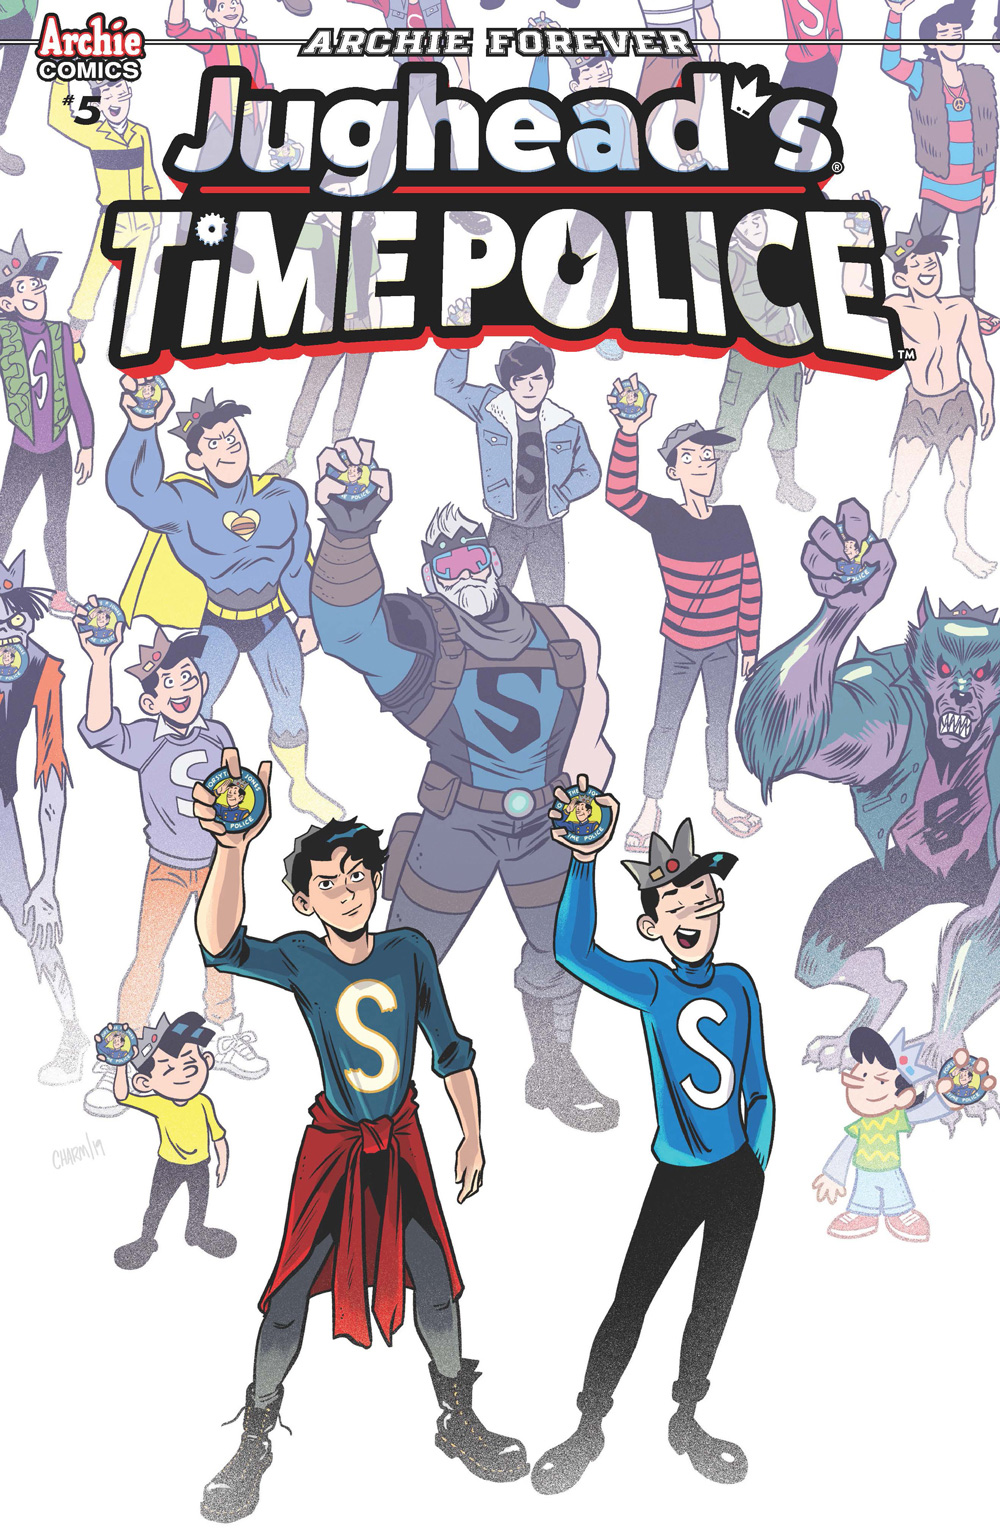 A variant cover of the newest issue.